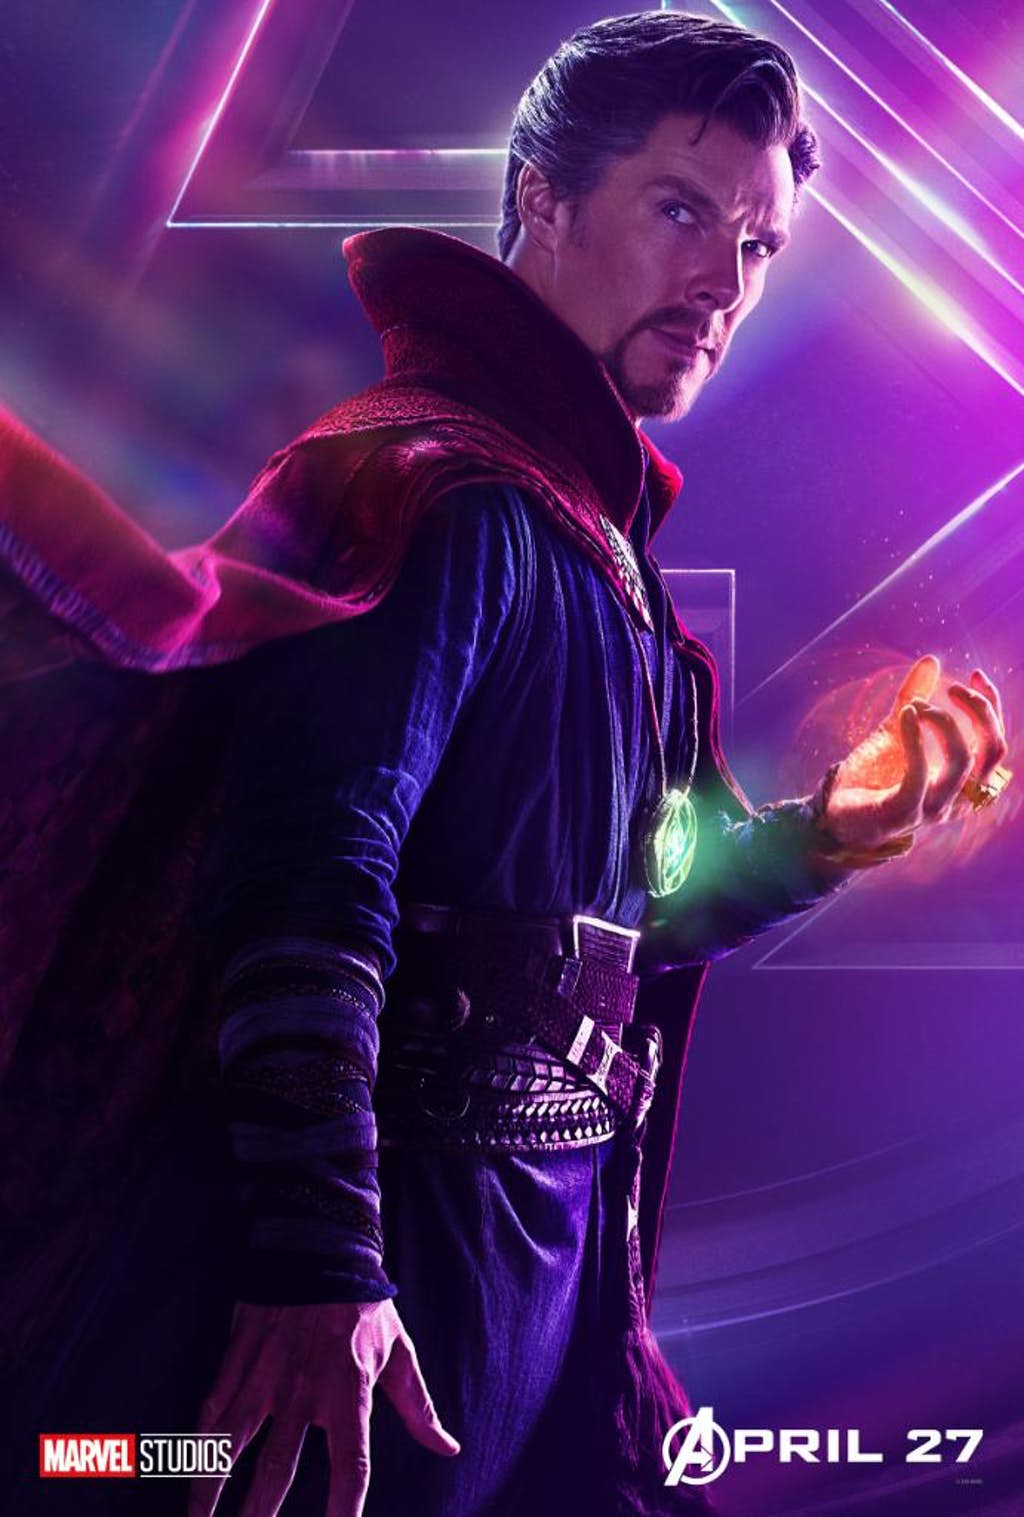 benedict cumberbatch: don't count on seeing more of doctor strange